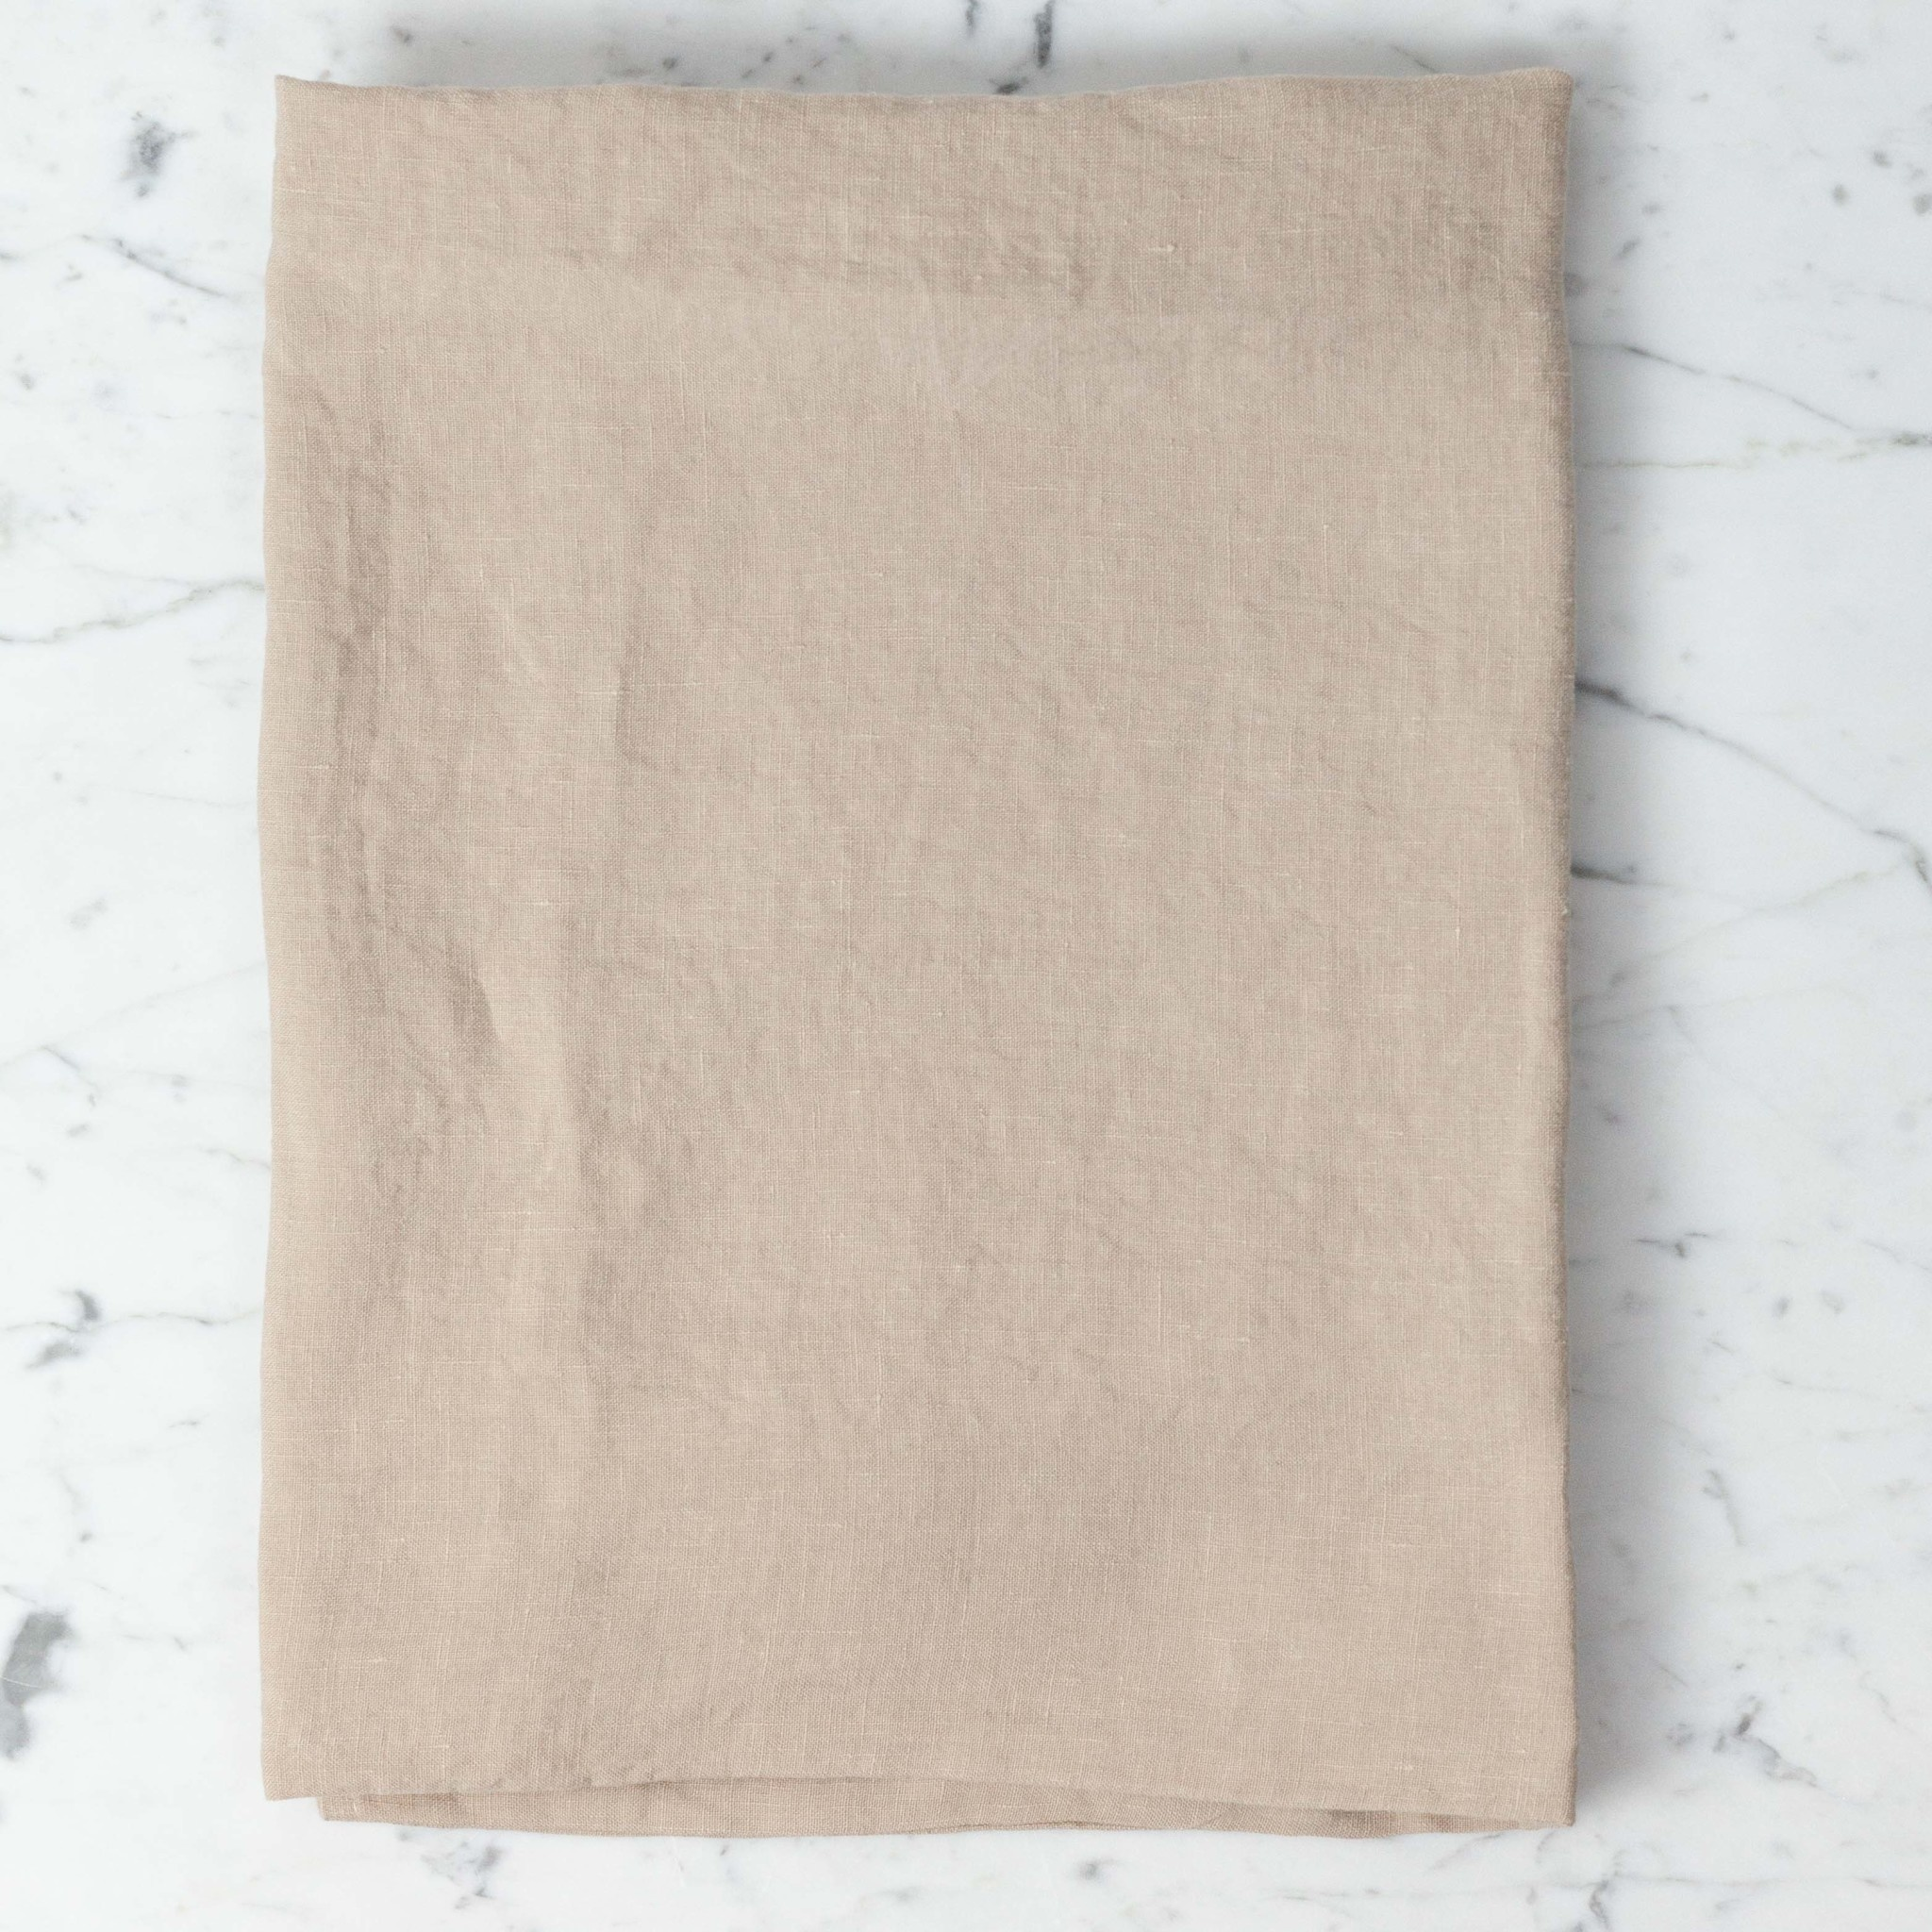 Linge Particulier Washed French Linen Pillow Cover - Sand - 26 x 26 in